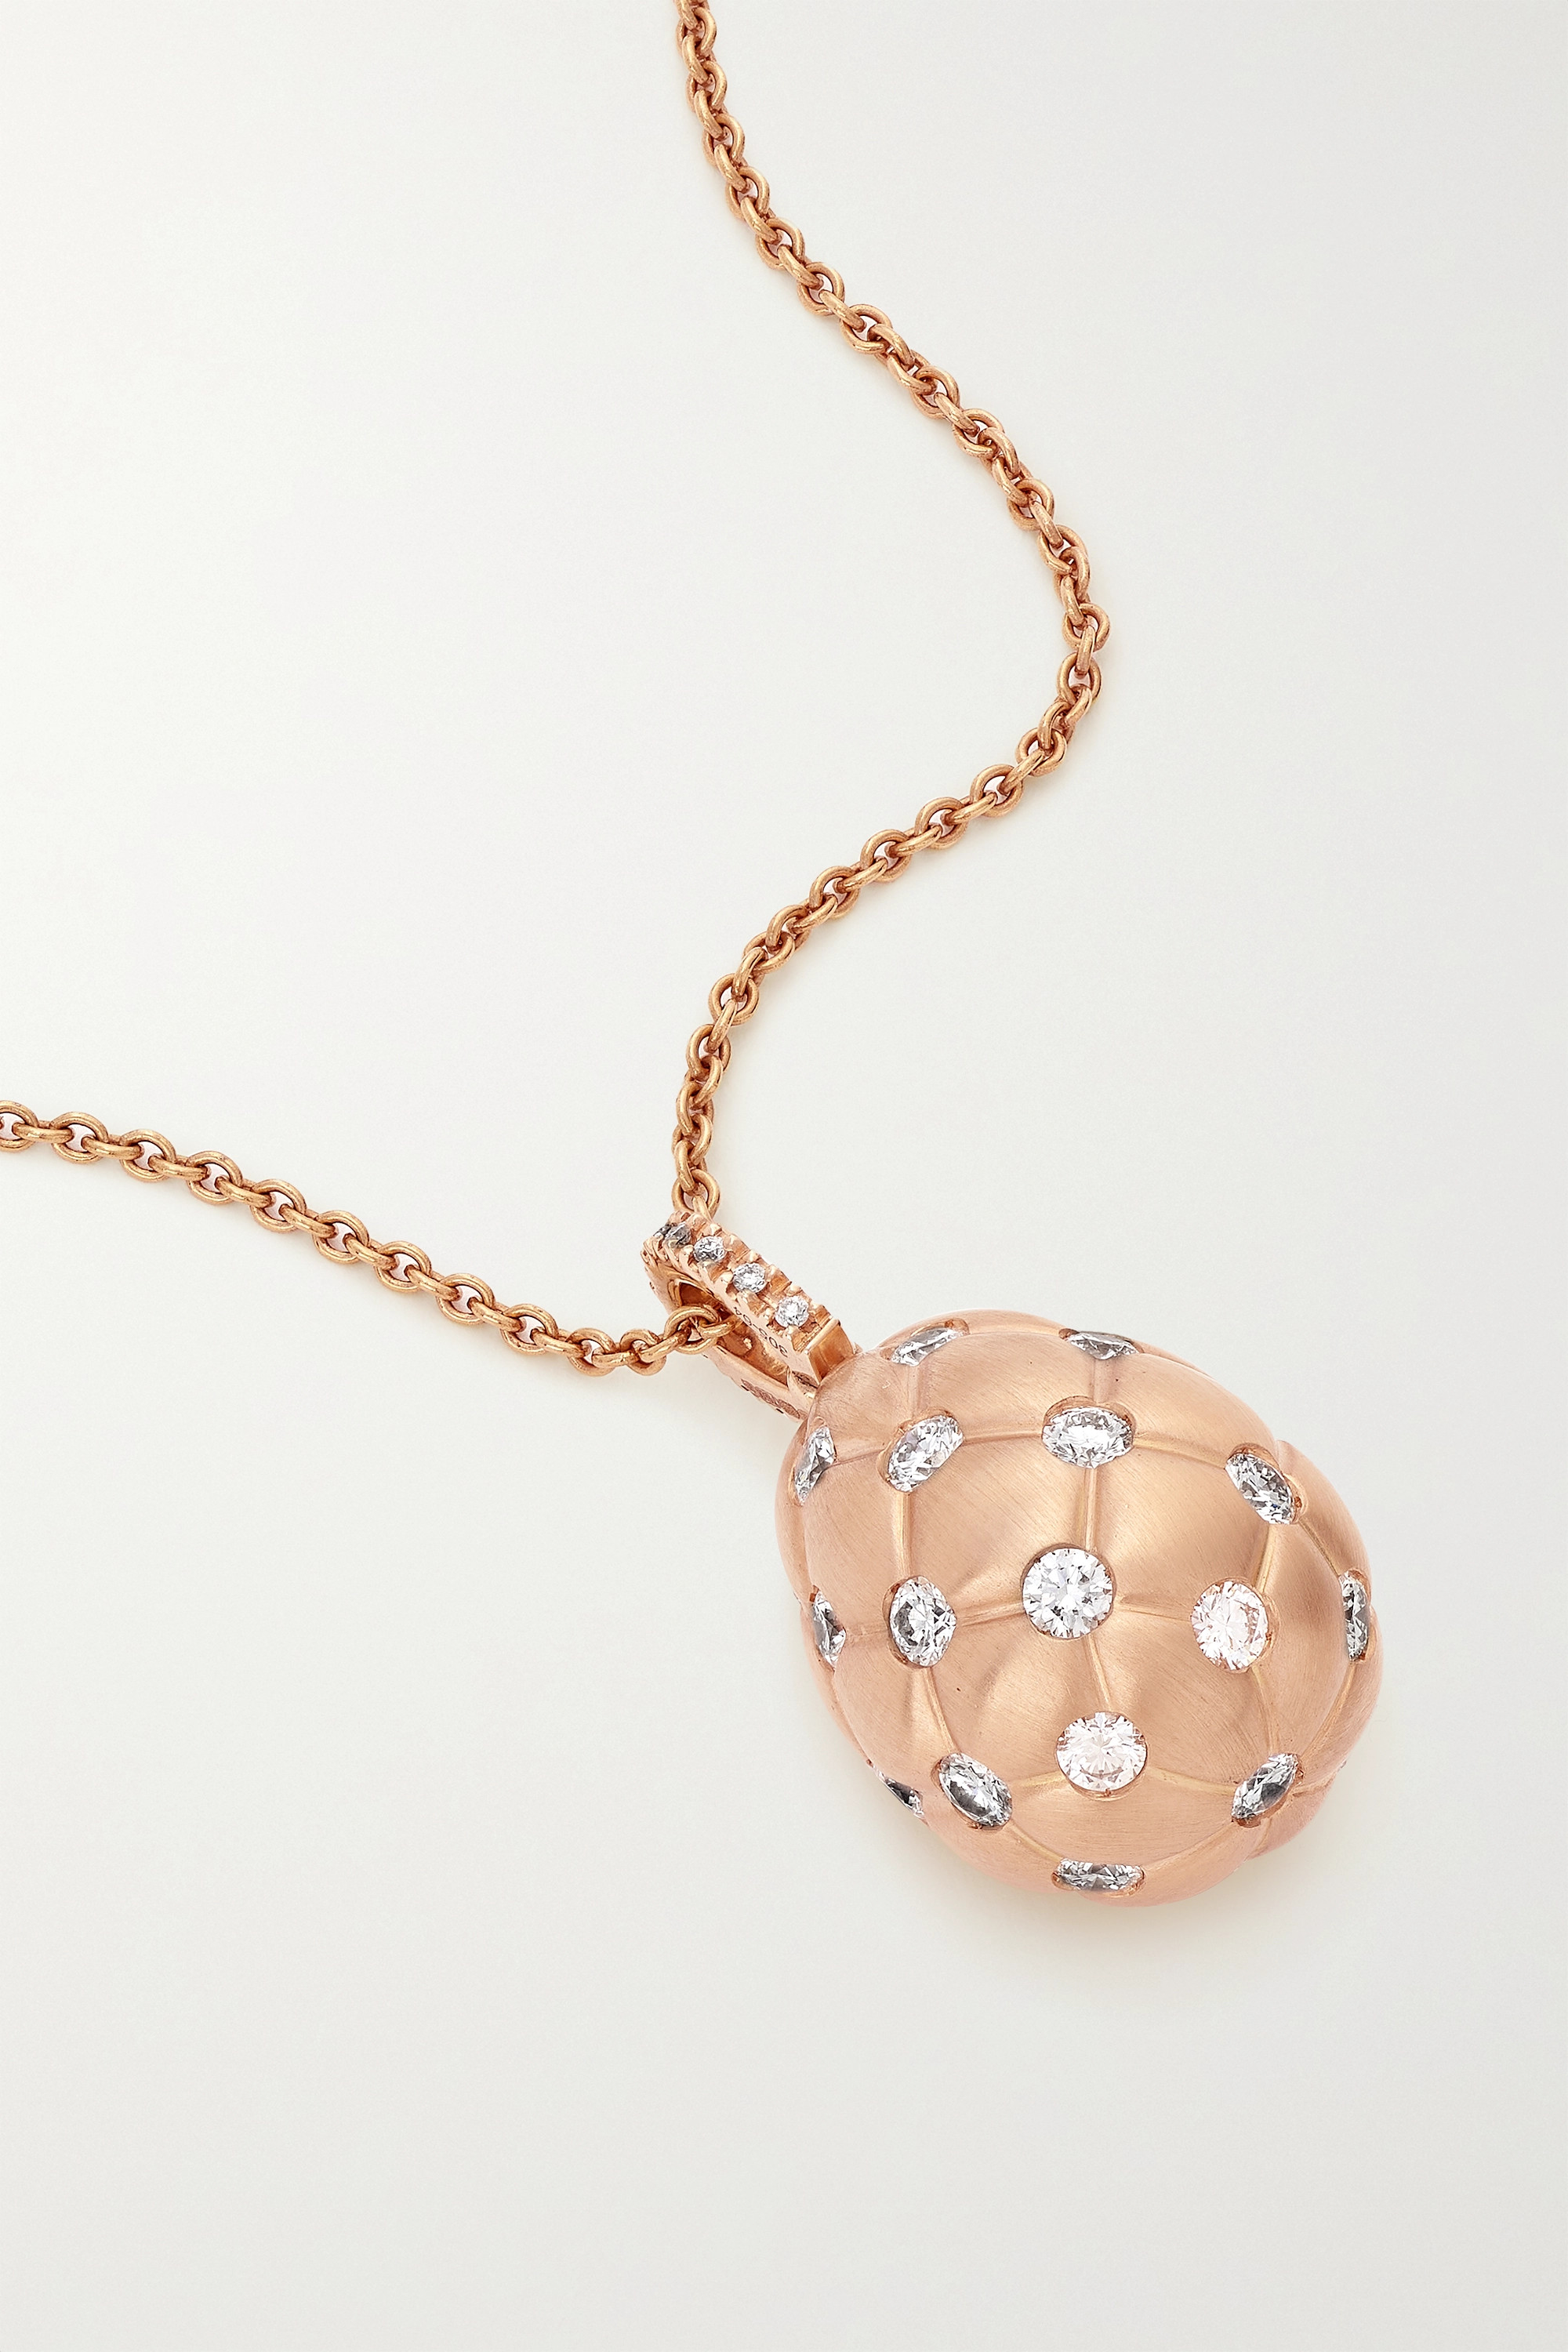 FABERGÉ Treillage 18-karat rose gold diamond necklace